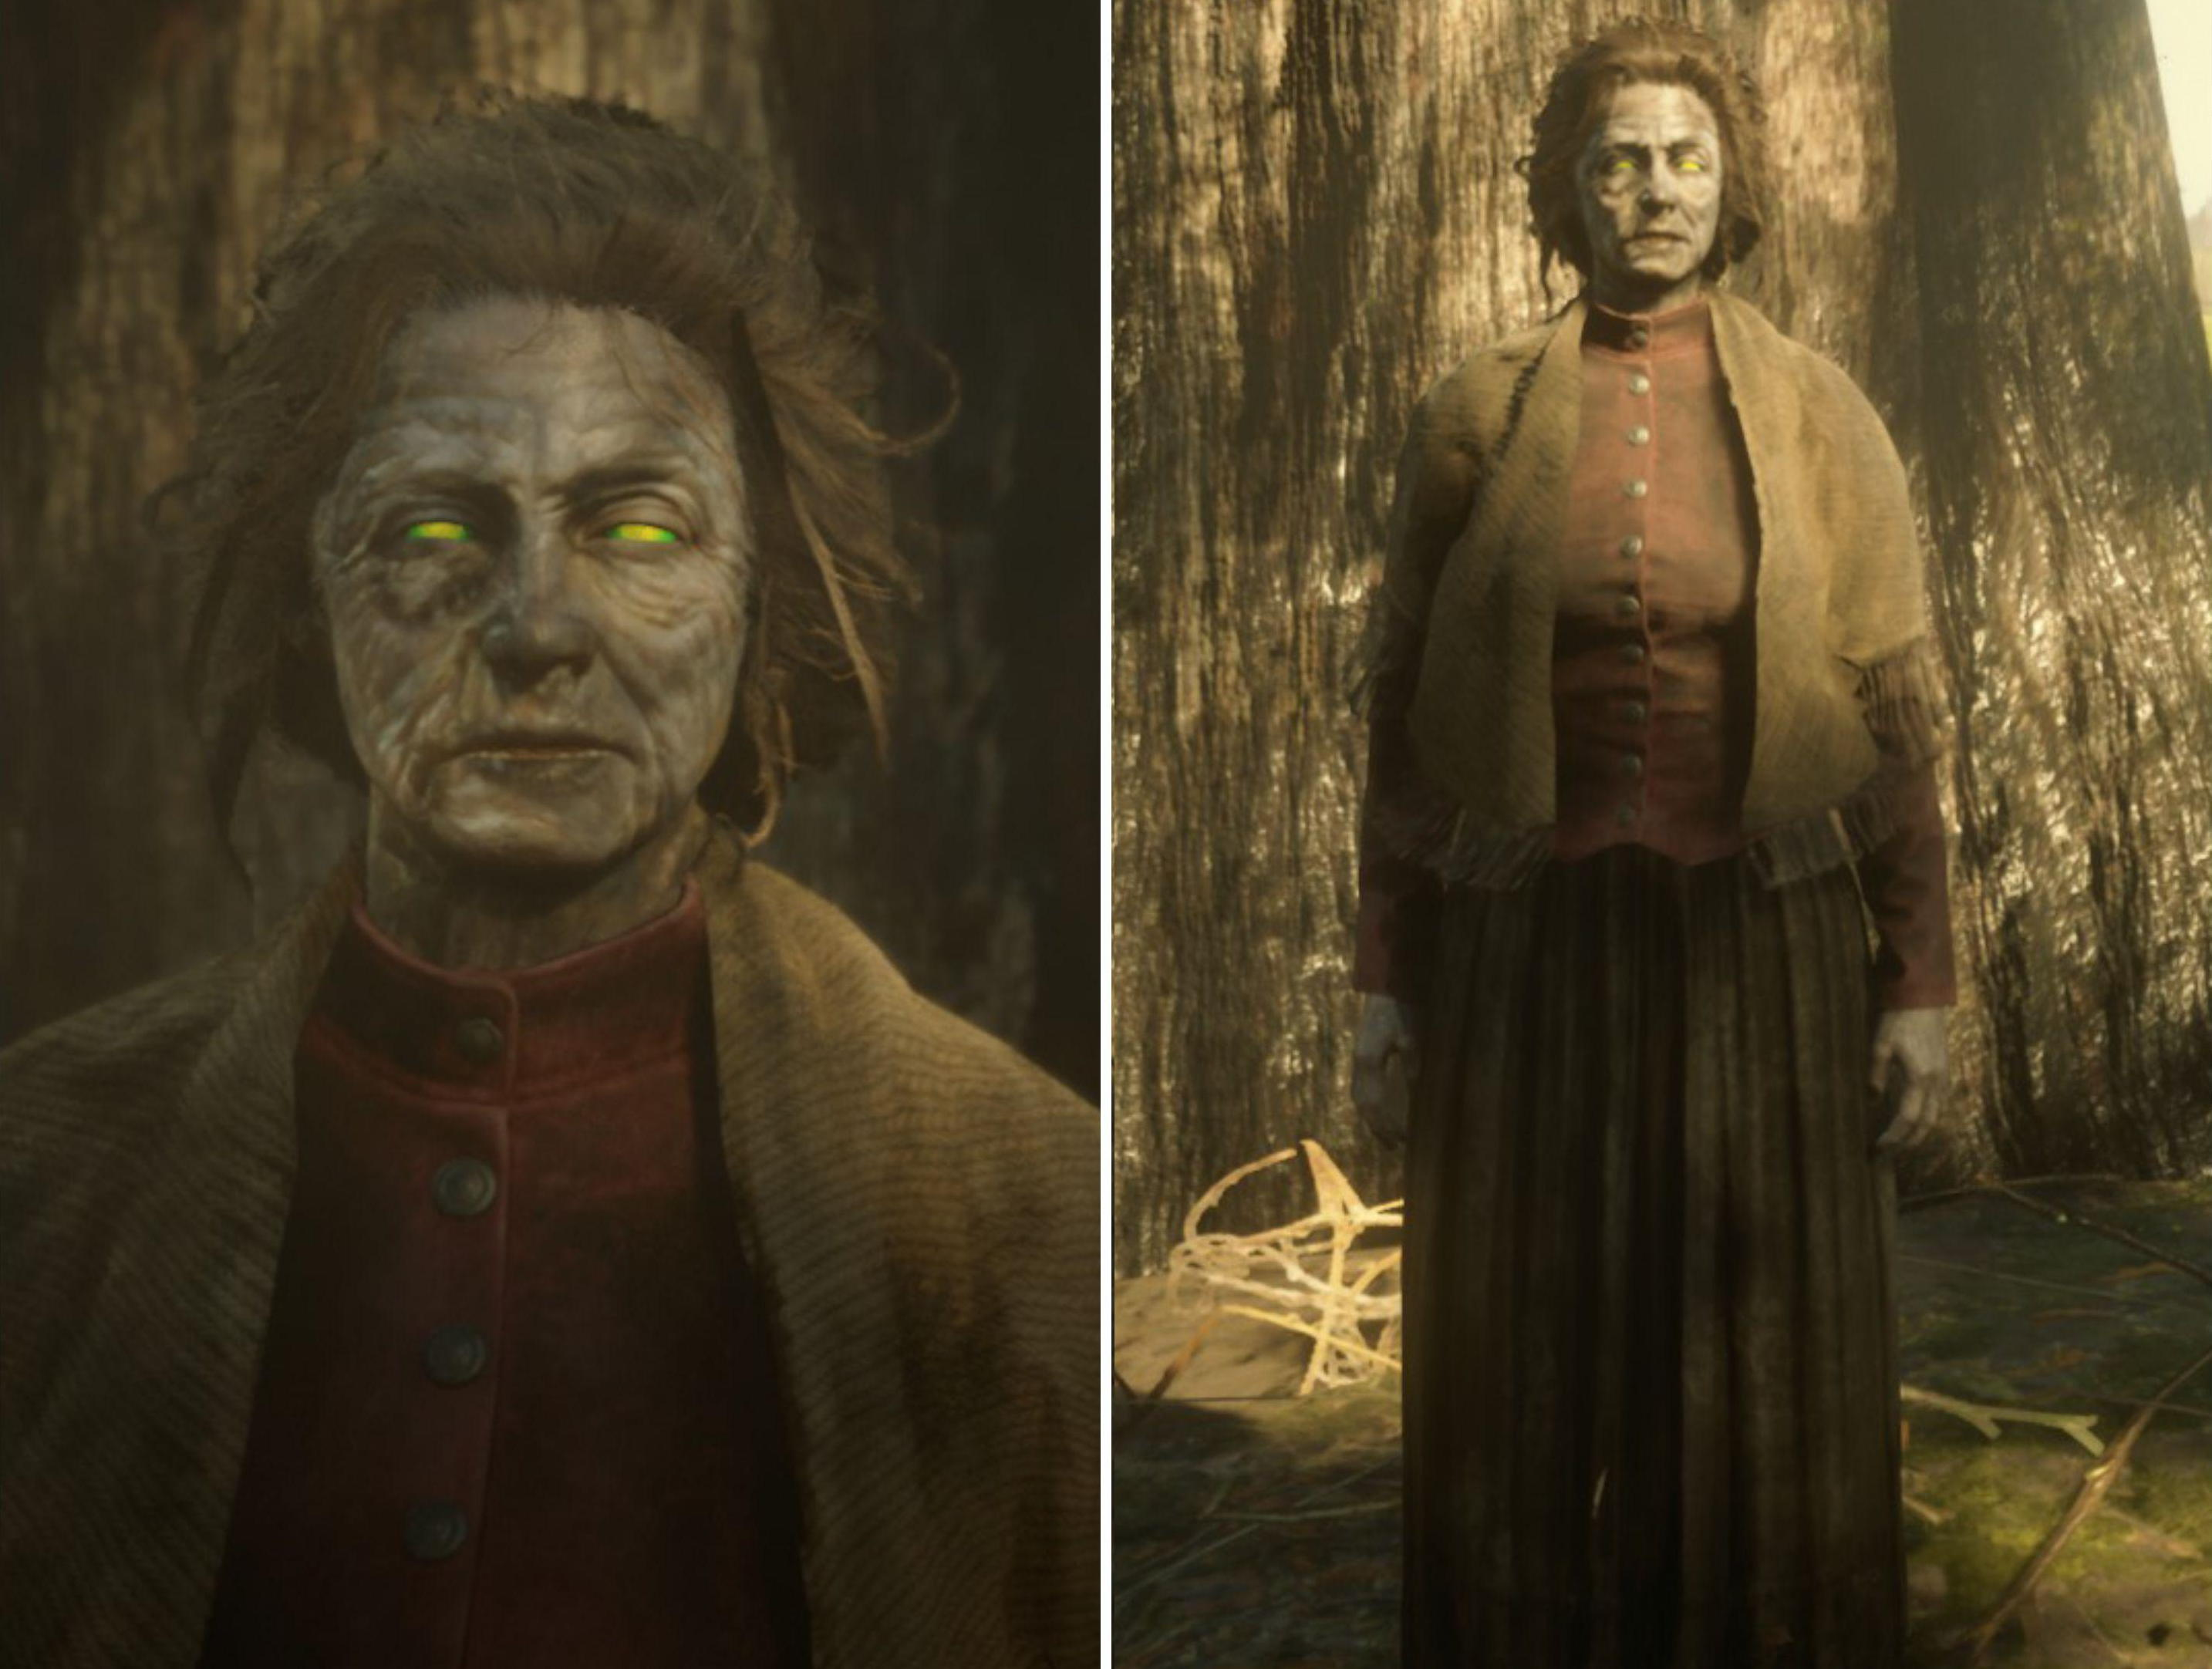 Two images of a woman with decayed features and zombie-like eyes from Red Dead Redemption